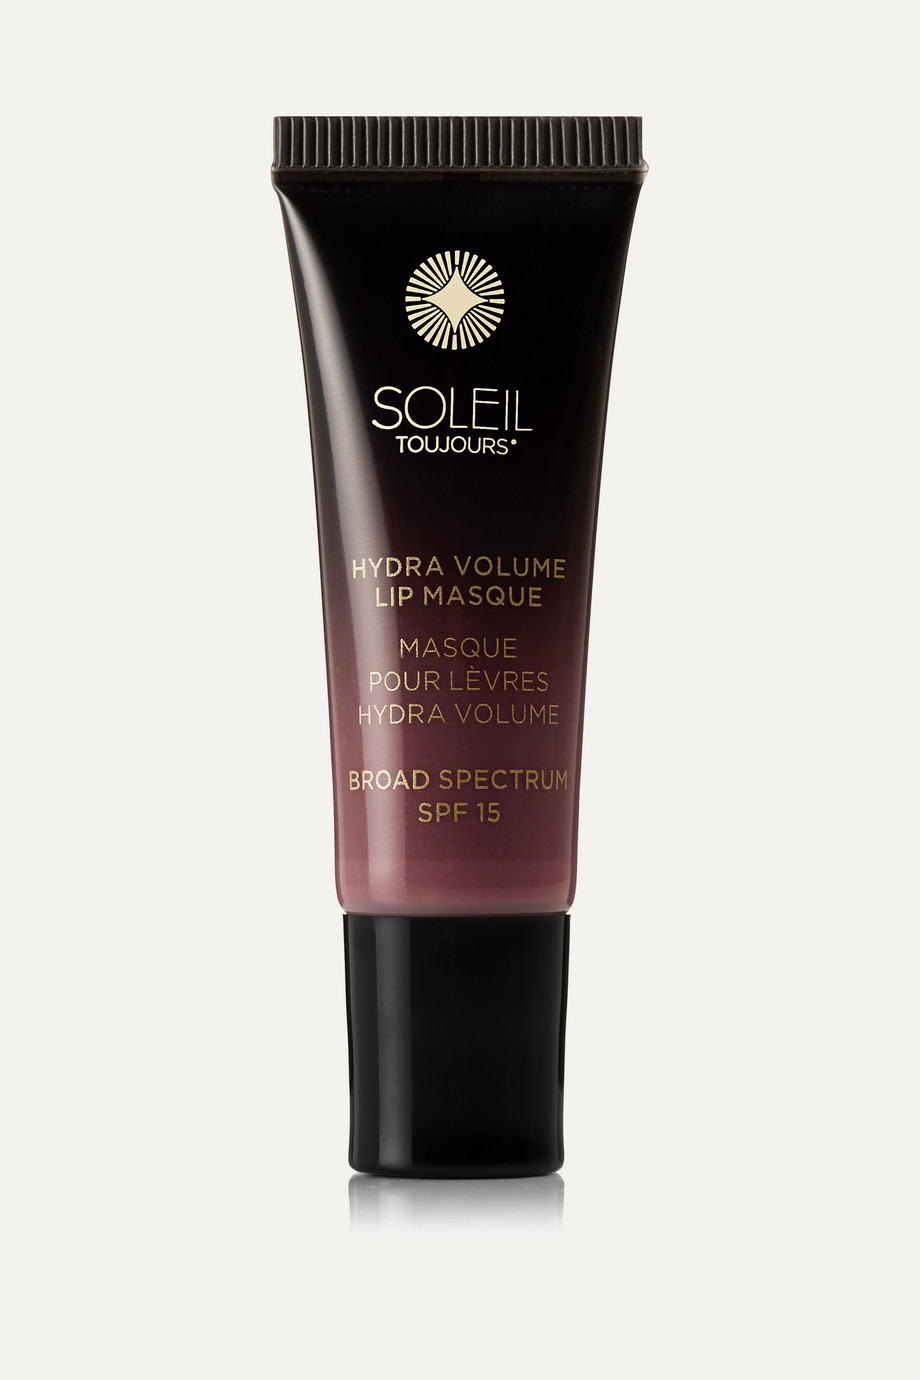 Soleil Toujours + NET SUSTAIN Hydra Volume Lip Masque SPF15 - Indochine